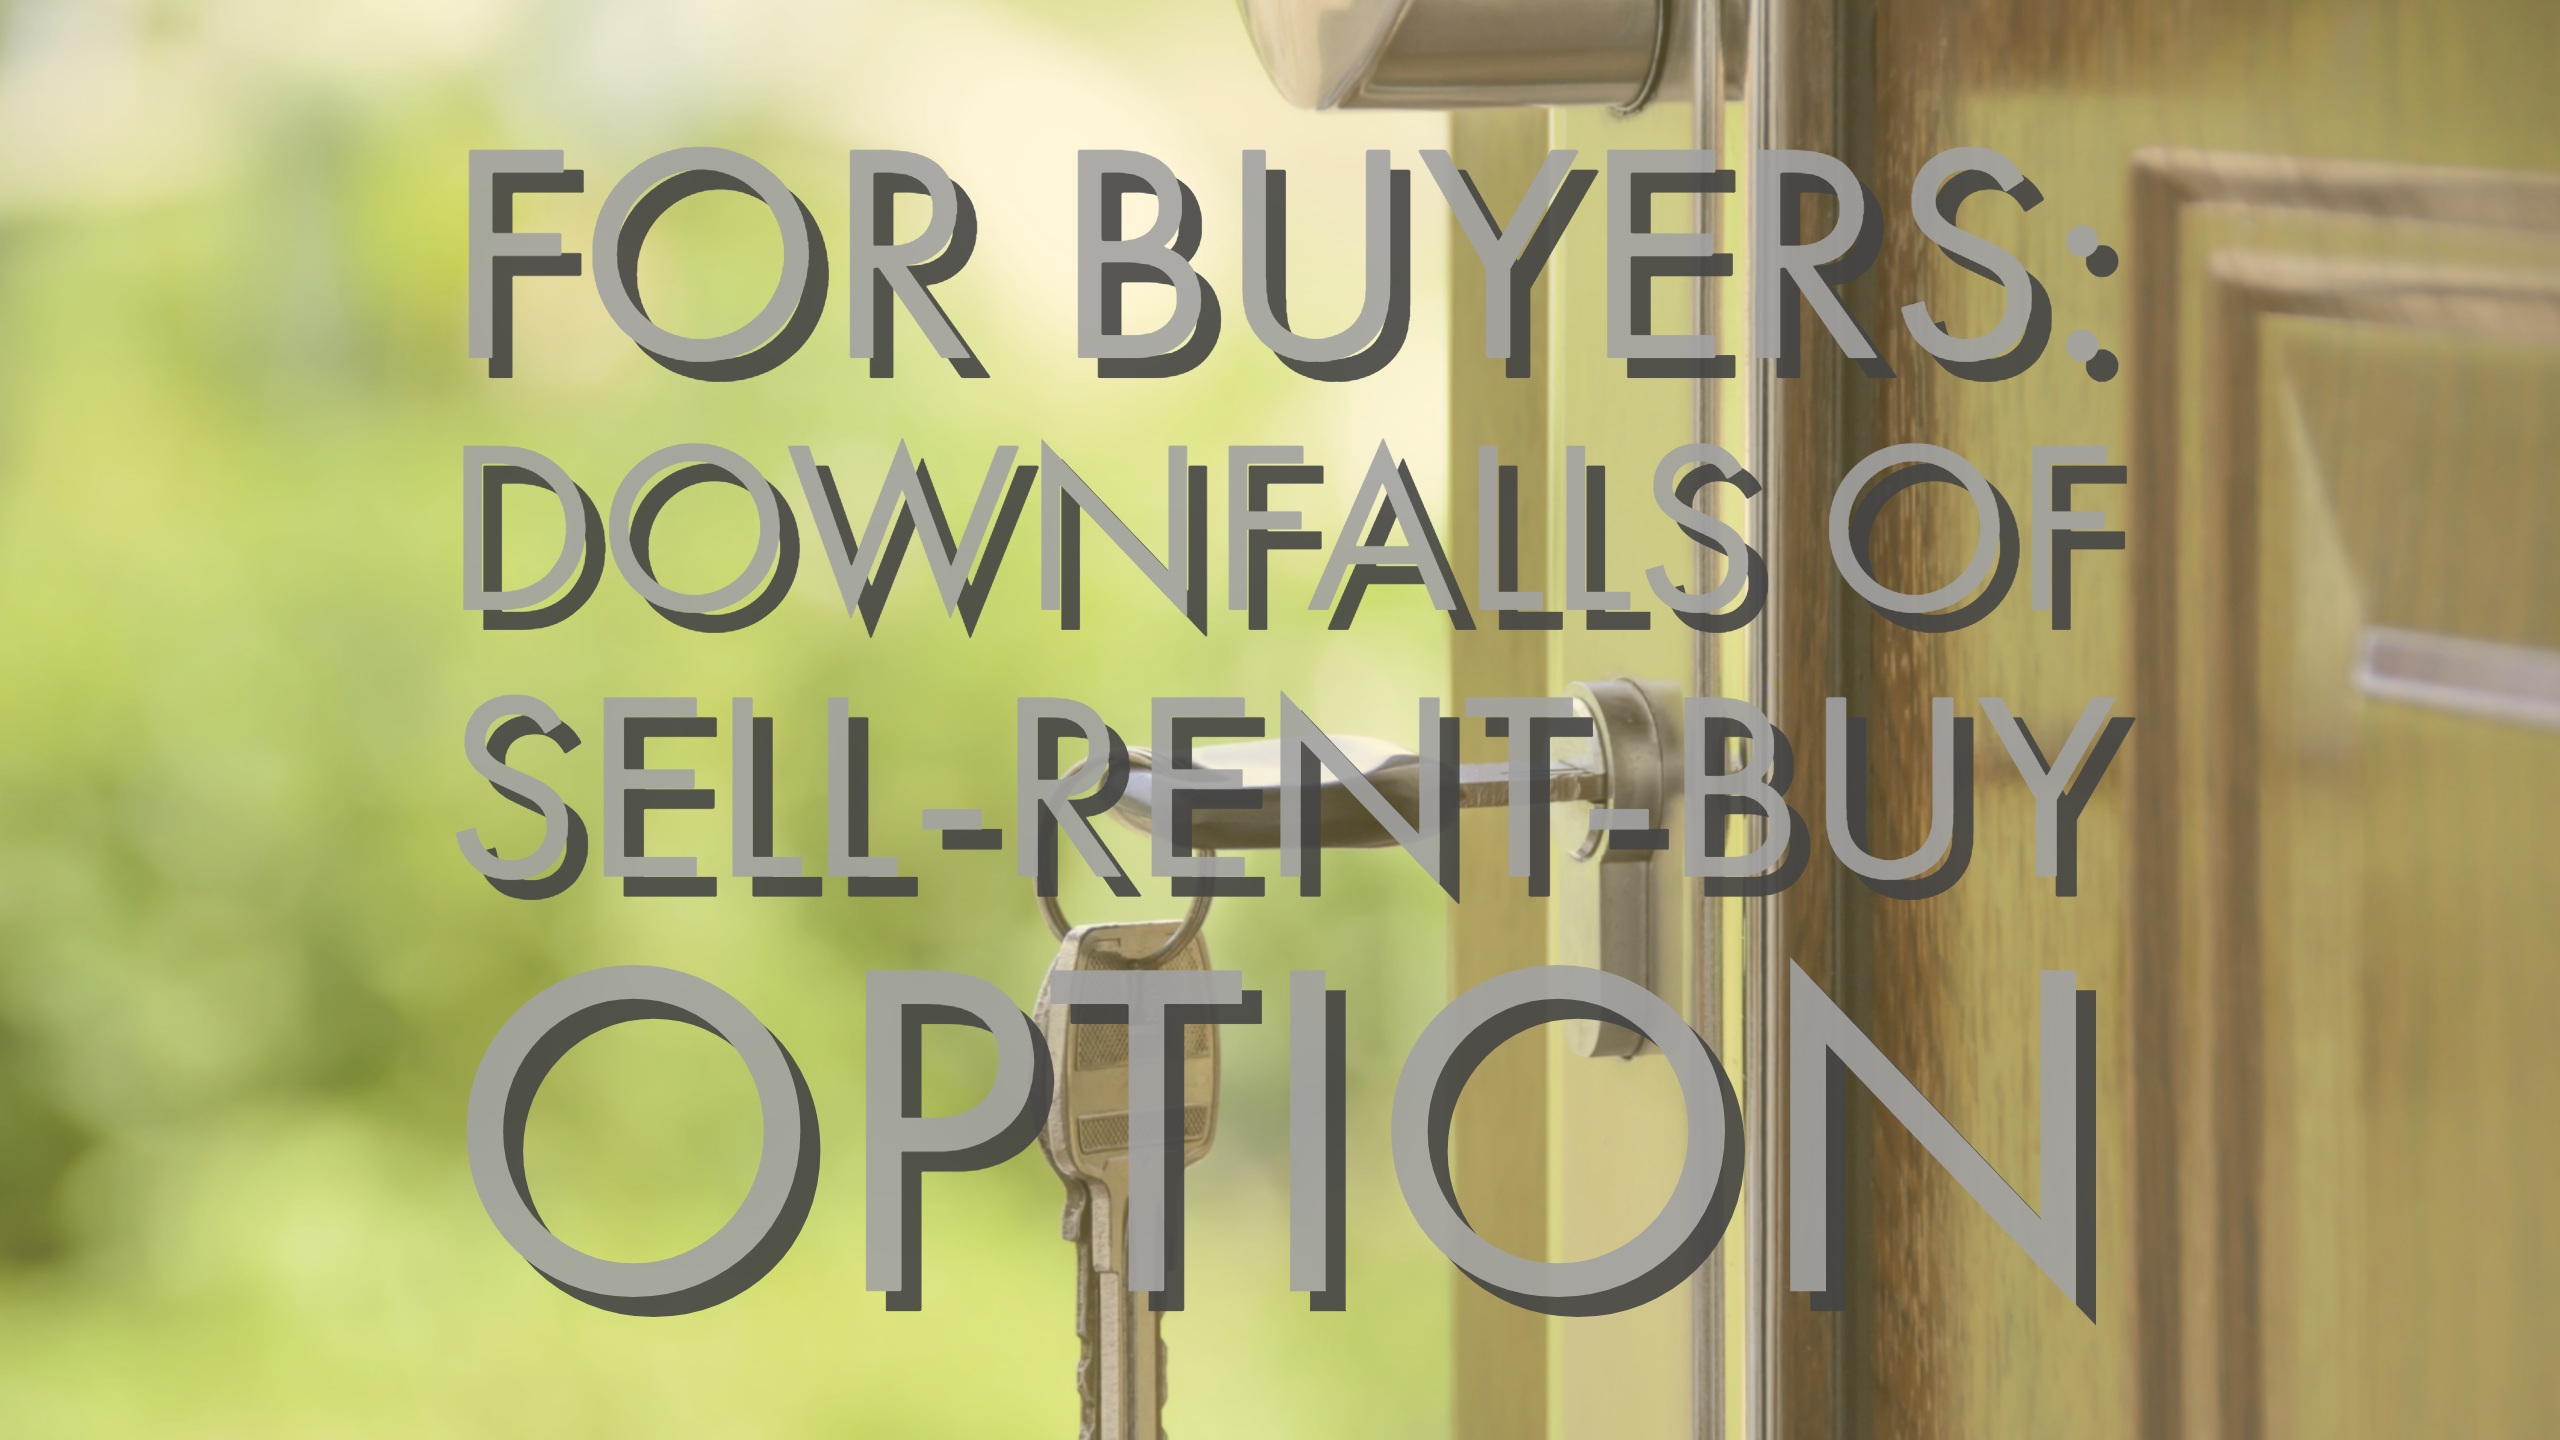 For Buyers: Downfalls of Sell-Rent-Buy Option